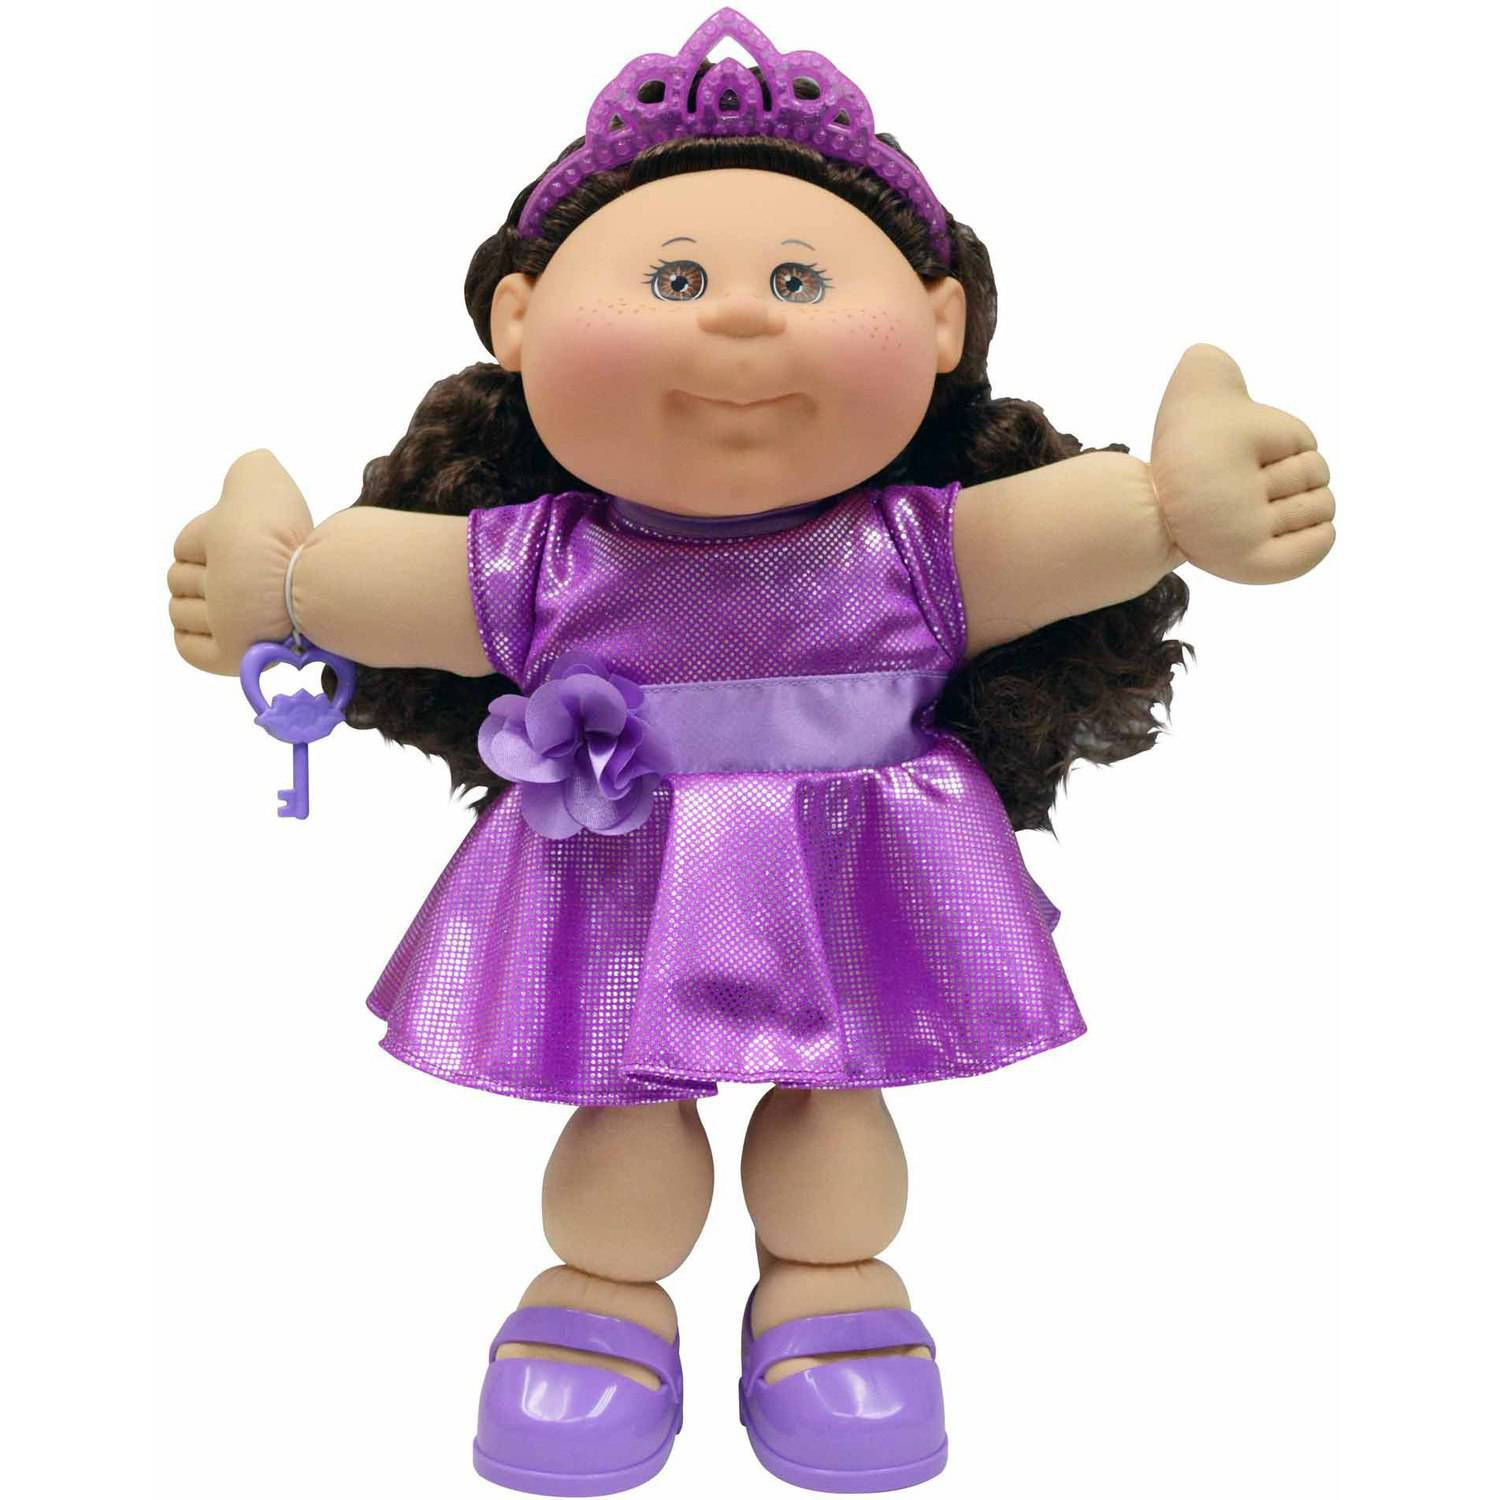 "Cabbage Patch Kids 14"" Girl, Caucasian, Brunette Hair"